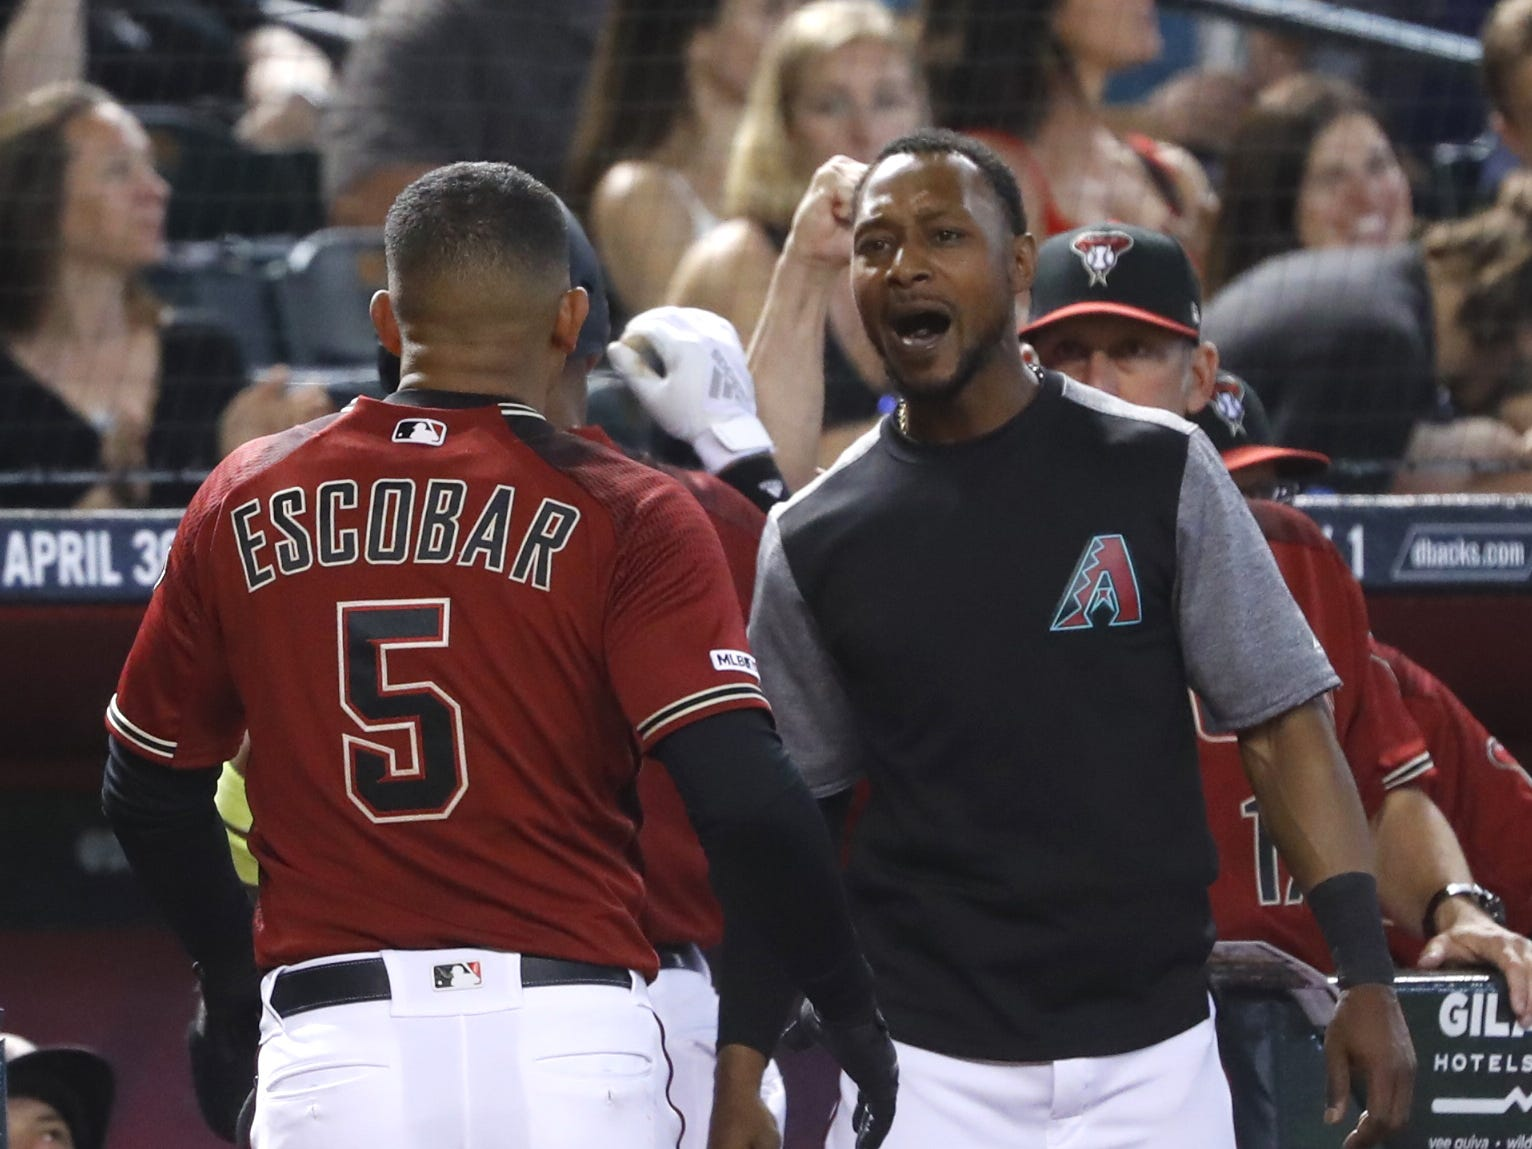 Diamondbacks' Jarrod Dyson (R) celebrates with Eduardo Escobar (5) after his second home run of the game during the sixth inning against the Cubs at Chase Field in Phoenix, Ariz. on April 28, 2019.